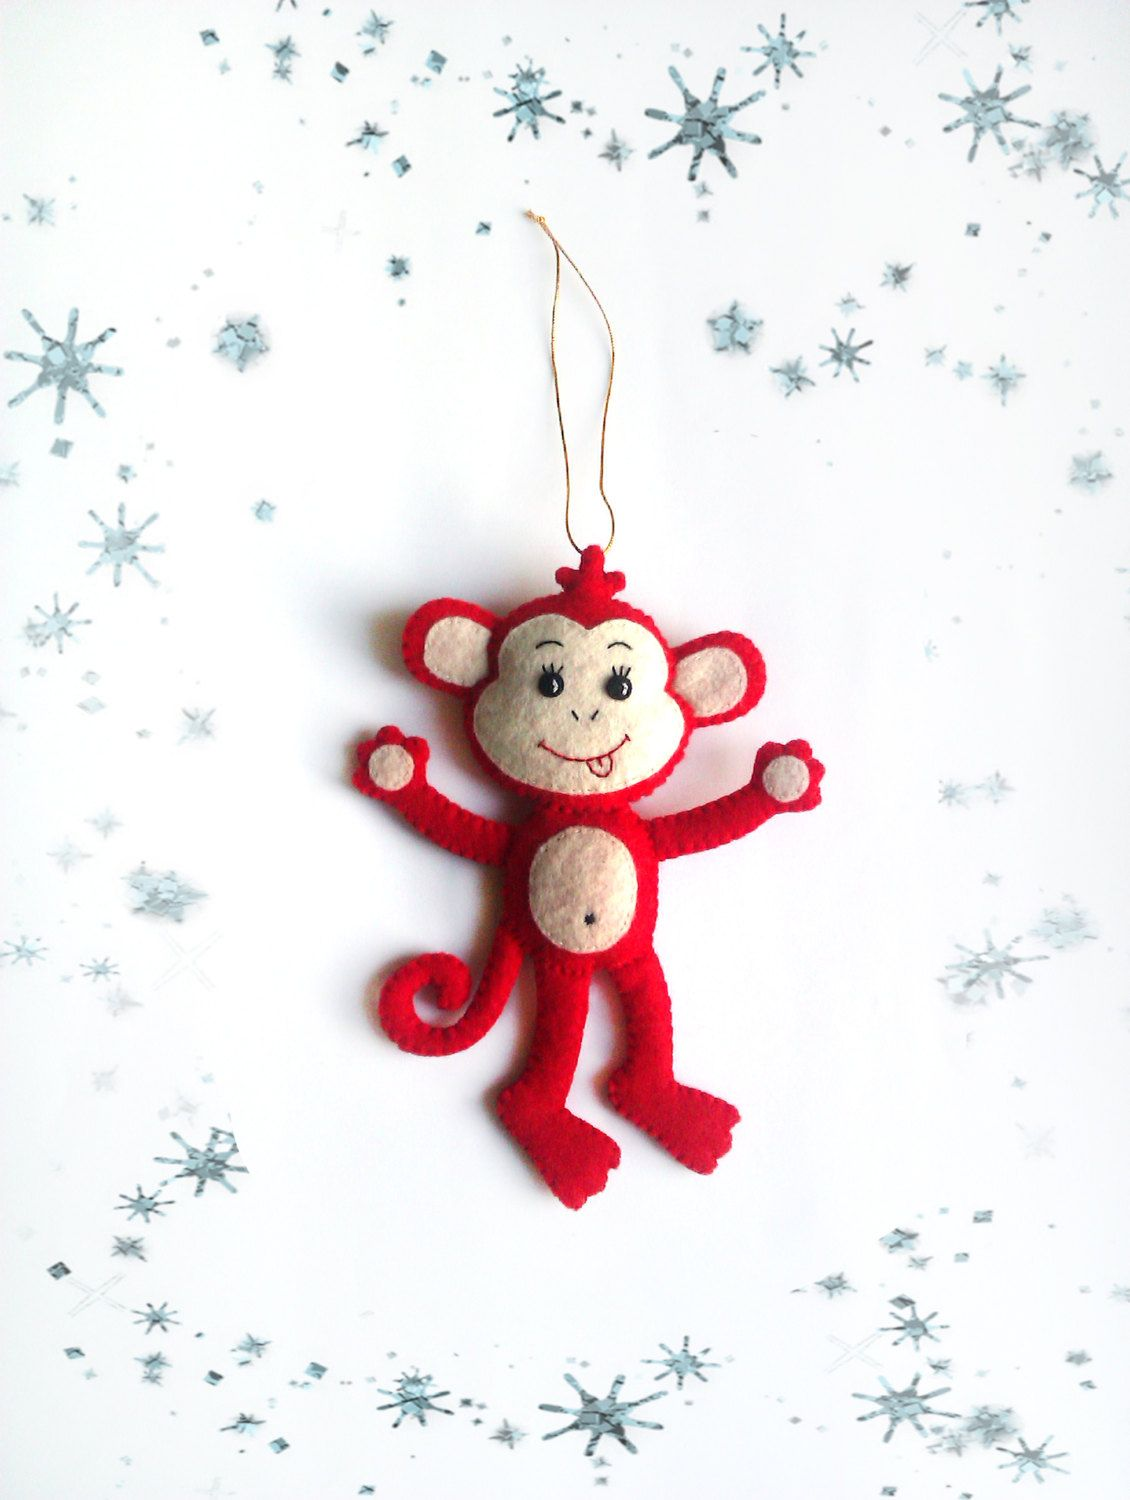 ornaments monkey christmas tree decorations handmade felt plush toys for holidays smile cute monkey christmas gift for kids creative decor by belkaua on